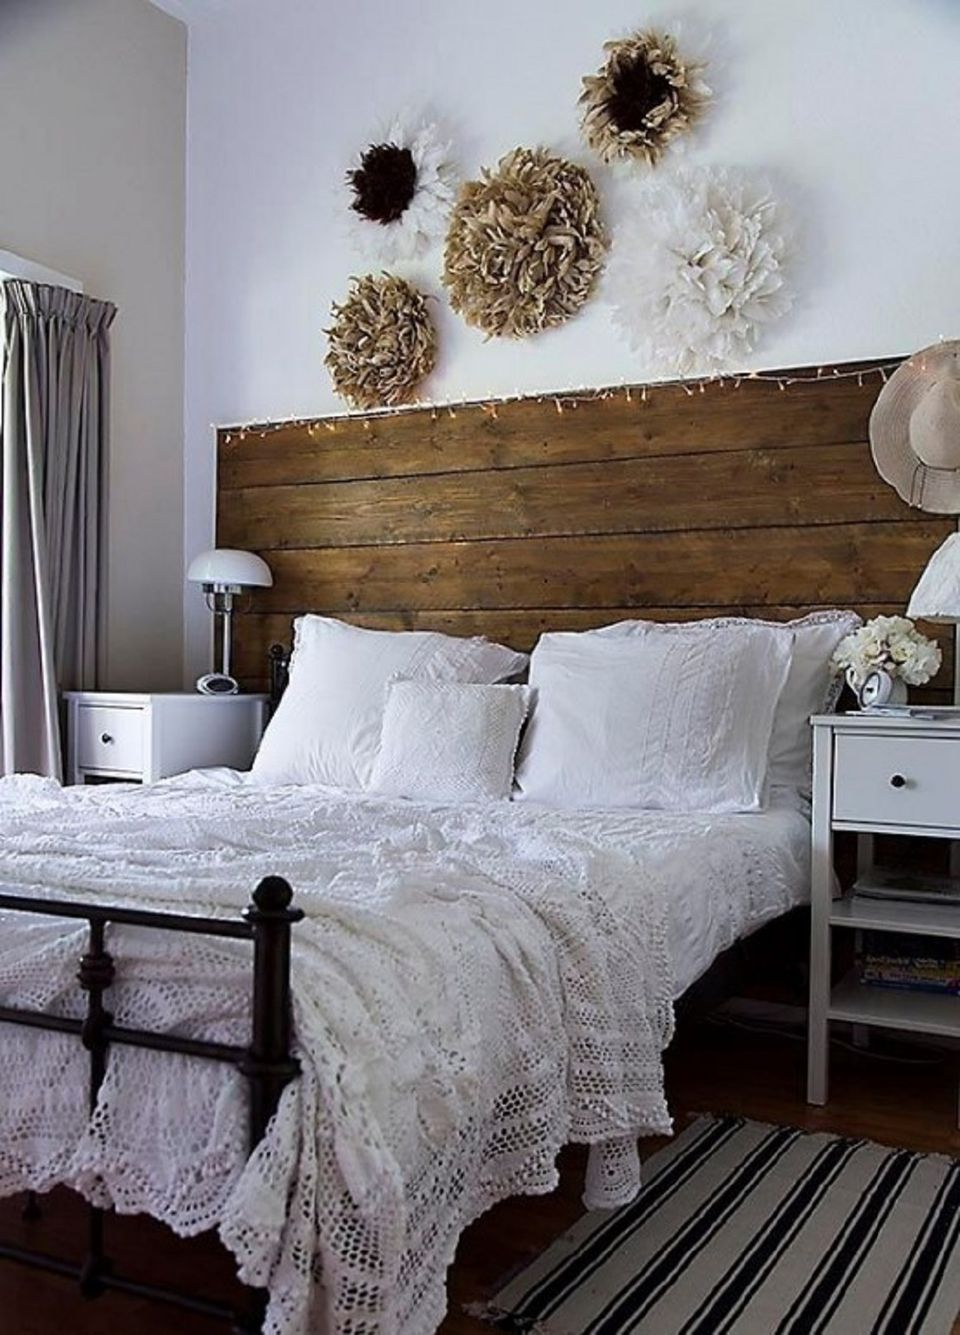 Vintage rustic bedroom. Vintage Bedroom Decorating Ideas and Photos